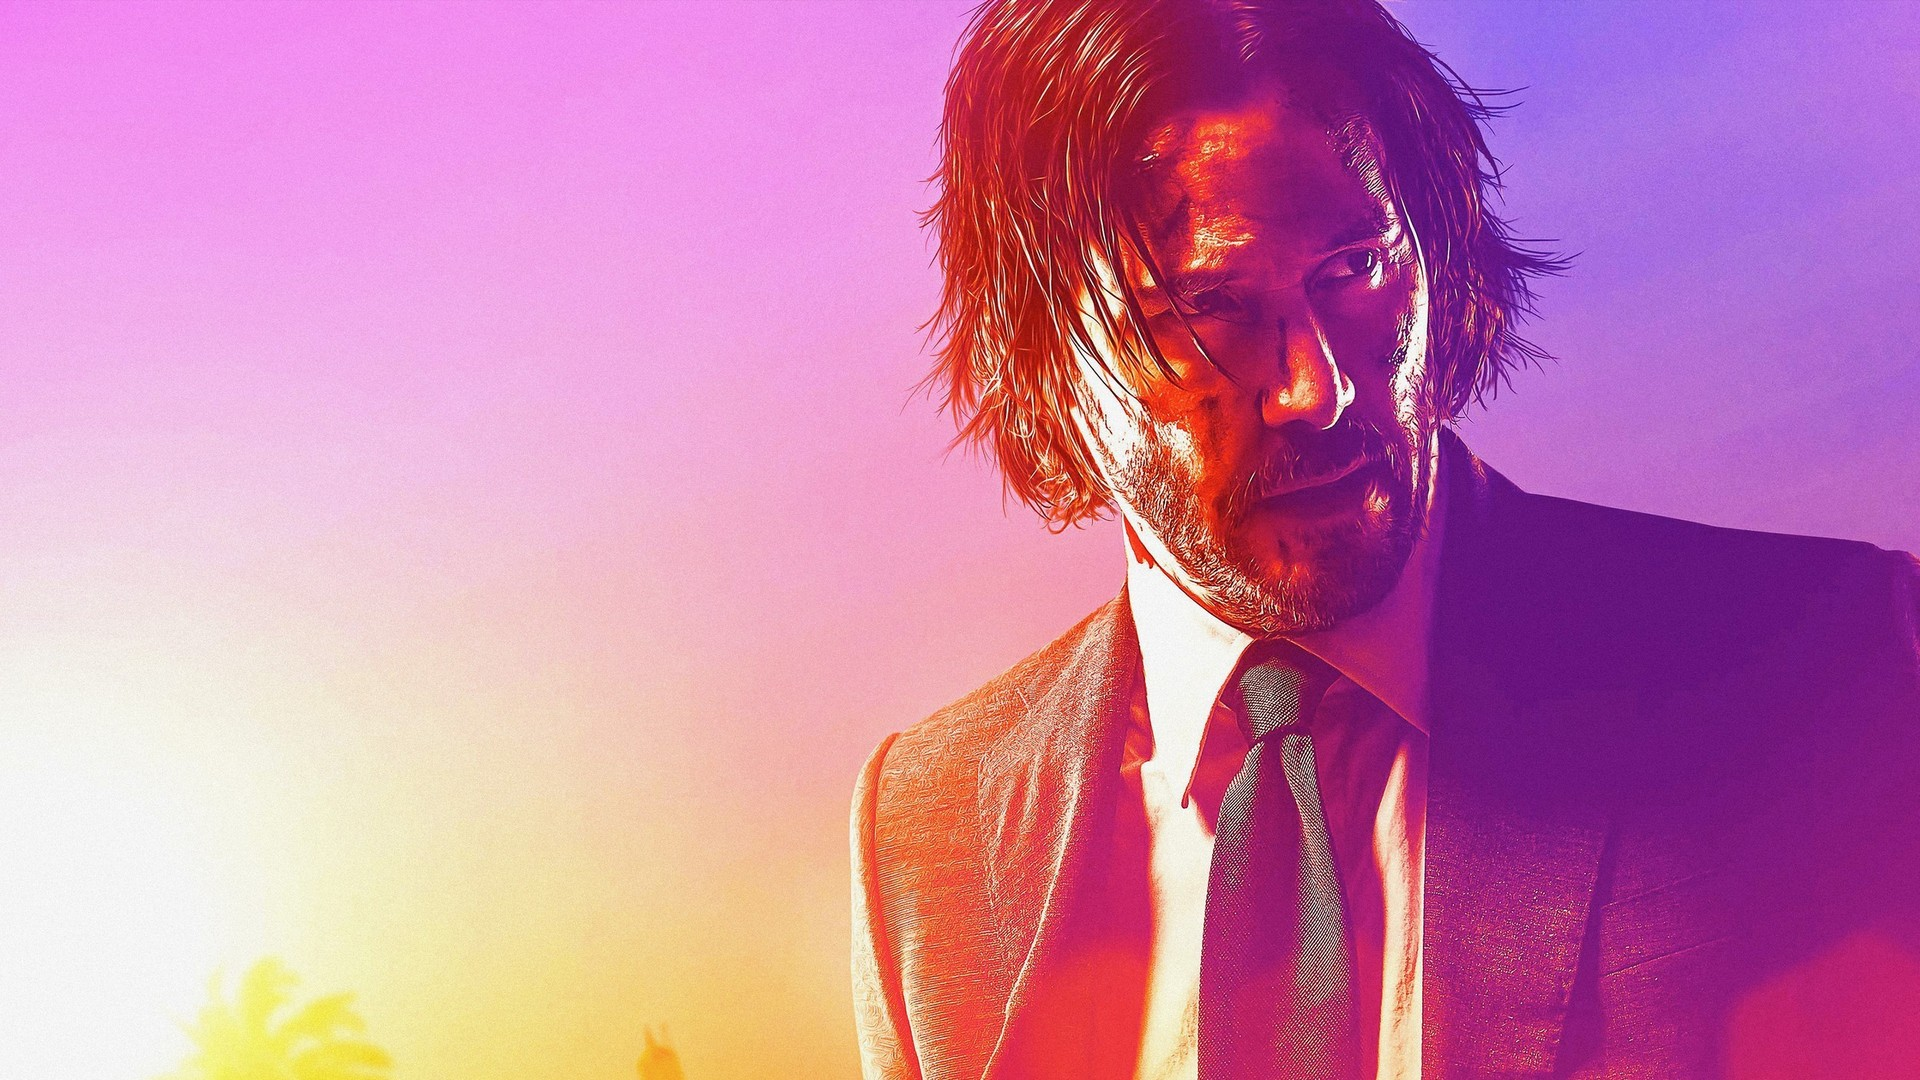 27 John Wick Chapter 3 Parabellum Wallpapers On